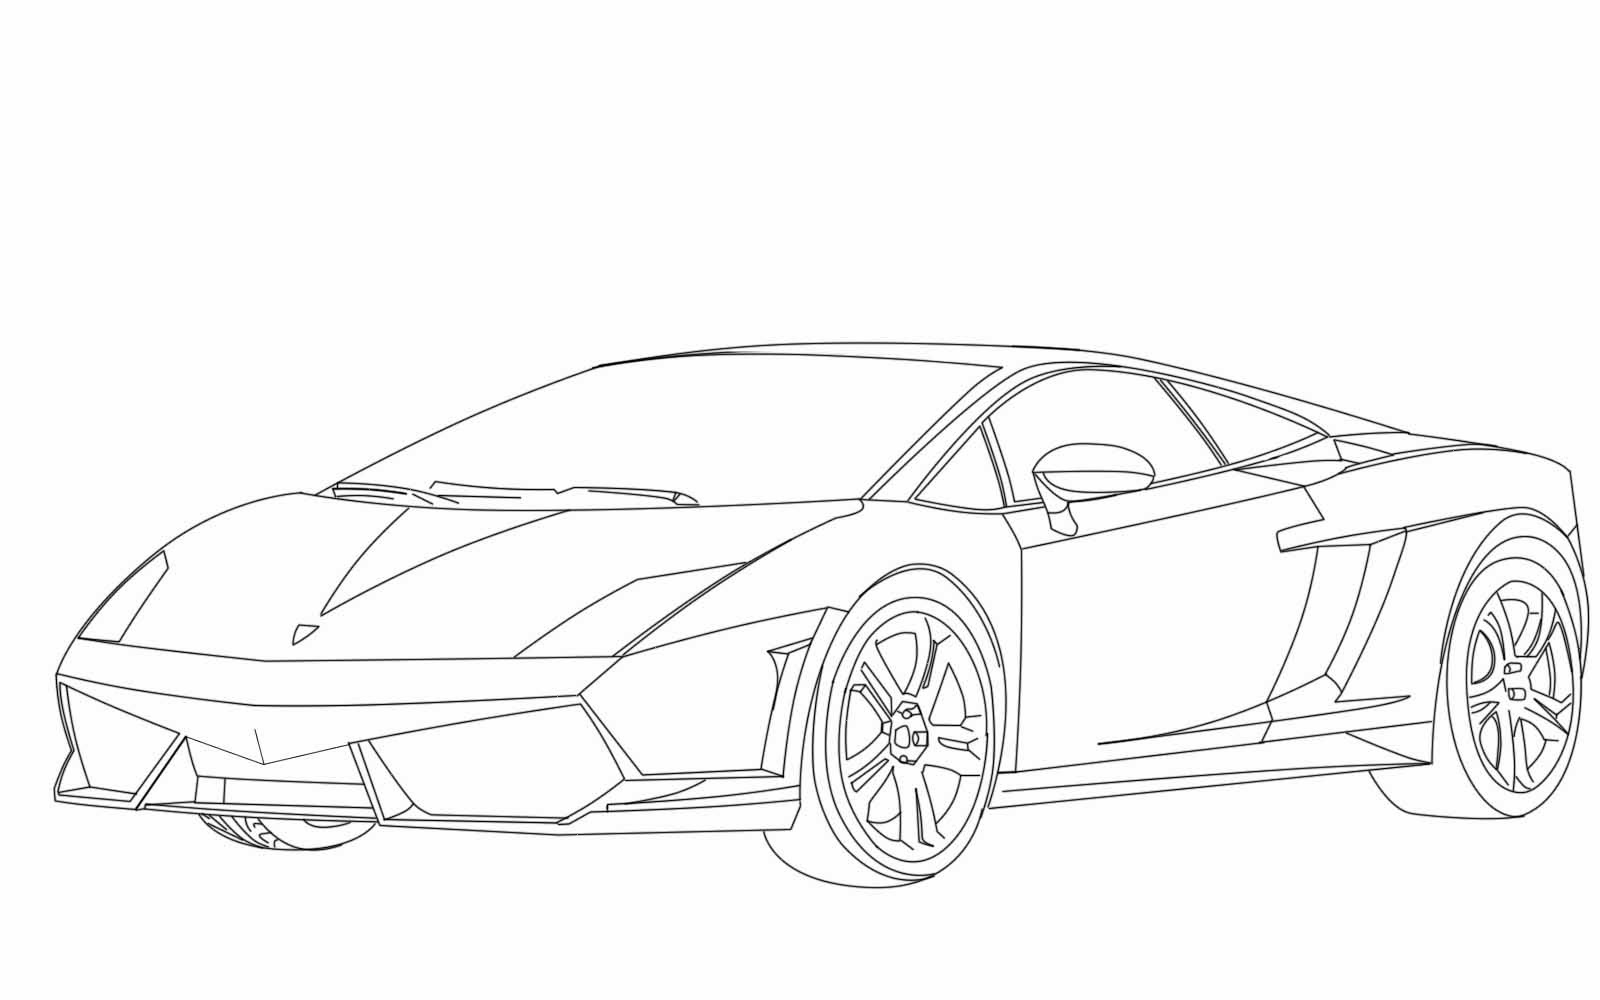 gallardo coloring pages - photo#15